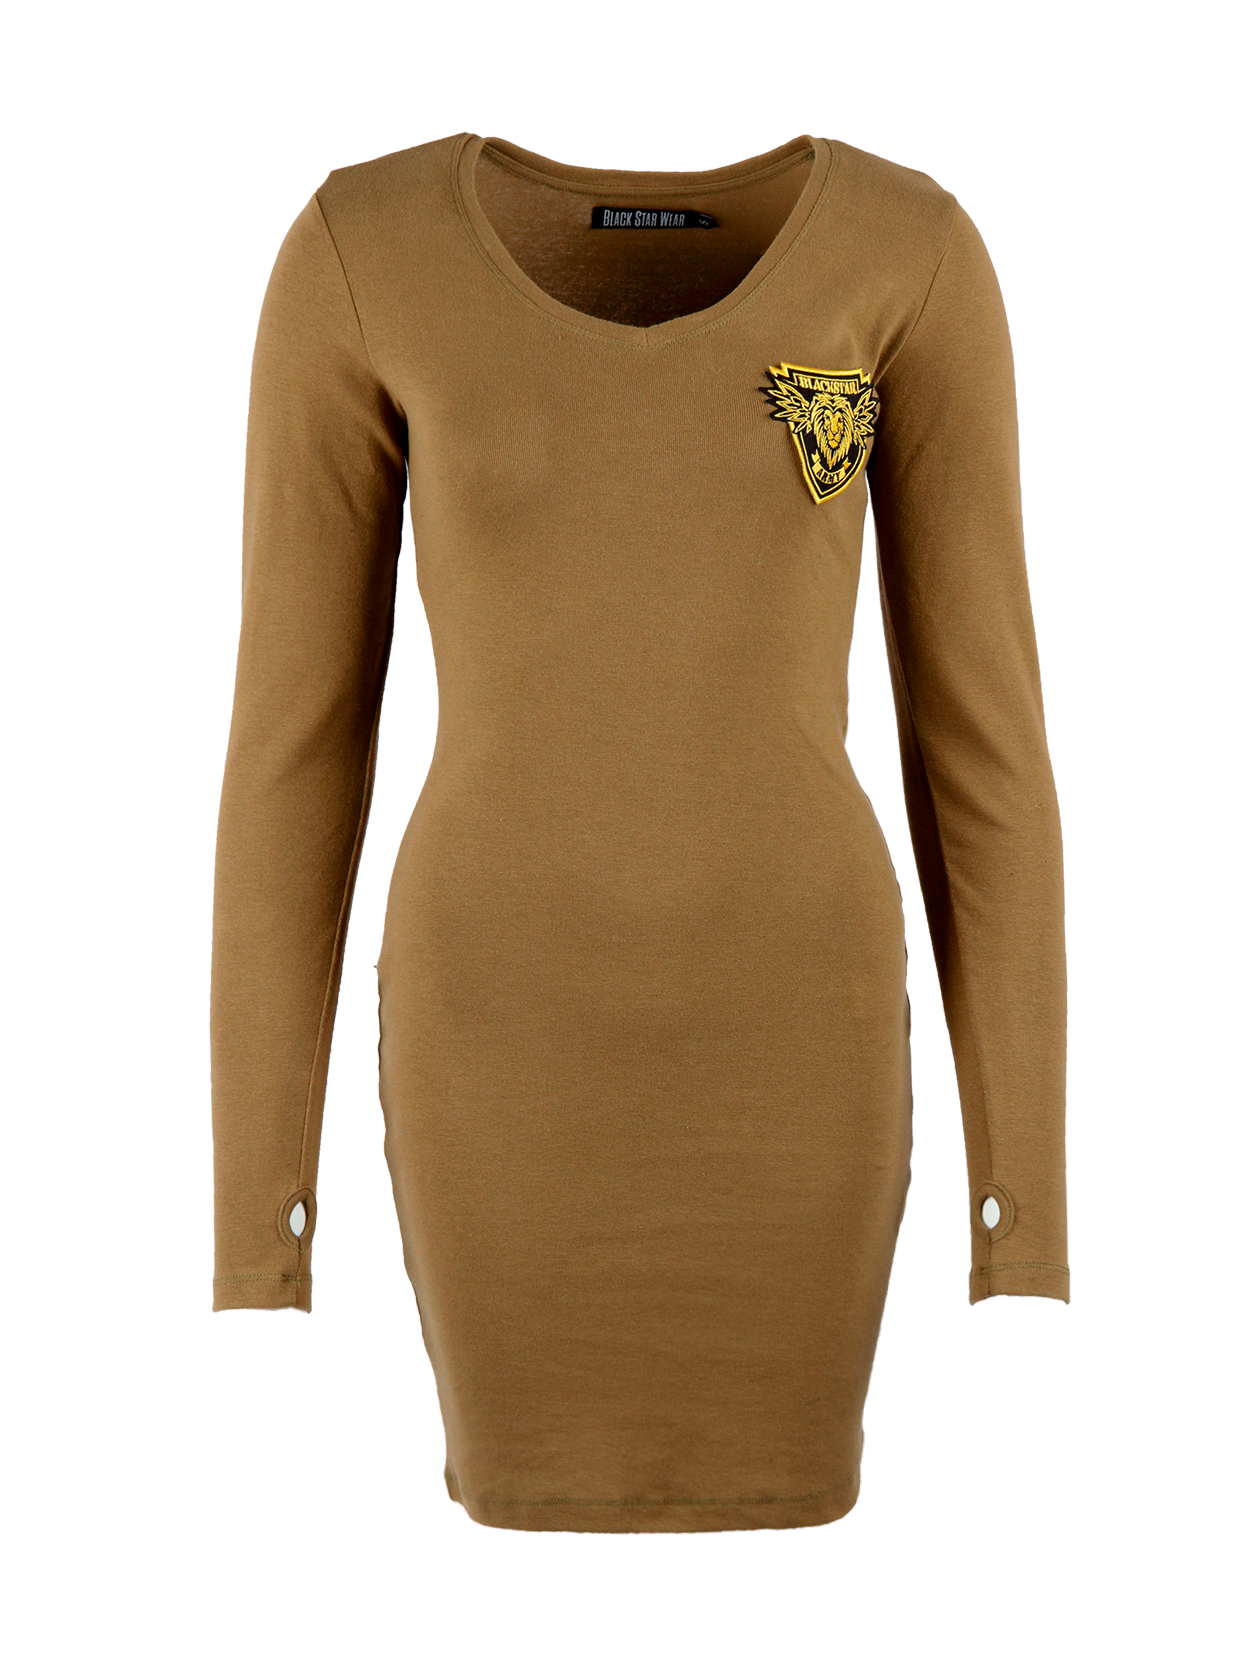 Womens dress Black Star ArmyWomens dress by Black Star Wear. Above knee length, slim fit, V-neck, long sleeves with a thumb hole. Natural cotton plus lycra for better fitting. Black Star Army patch on the chest with a lions head. Avaliable in khaki.<br><br>size: L<br>color: Khaki<br>gender: female